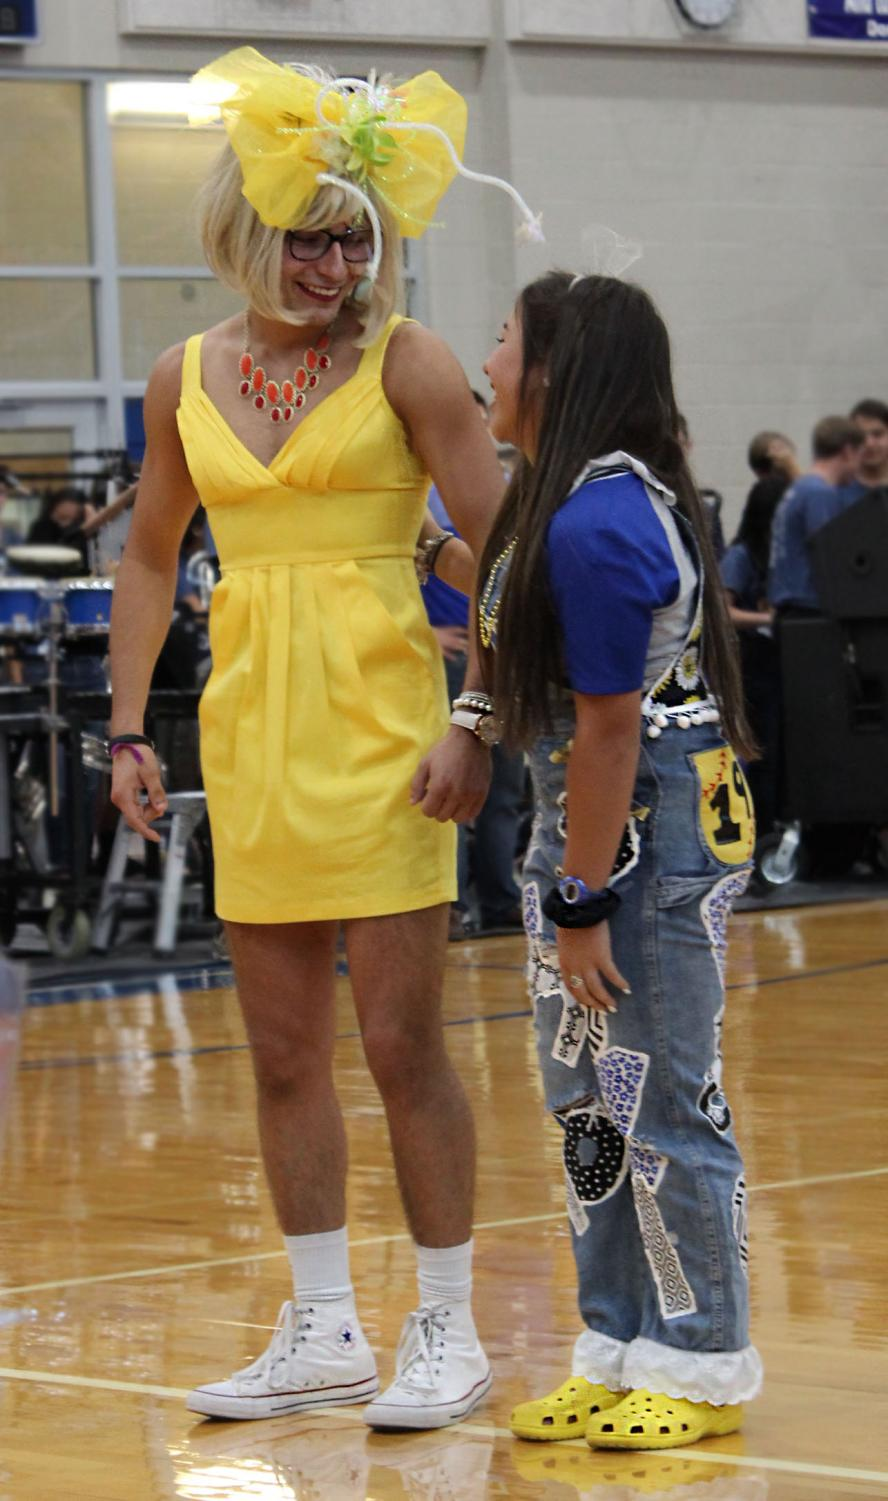 Eric Flores and Monica Garza laugh together during the Homecoming pep rally. Flores was elected King at the end of the pep rally and Garza was elected Queen that night at the football game.